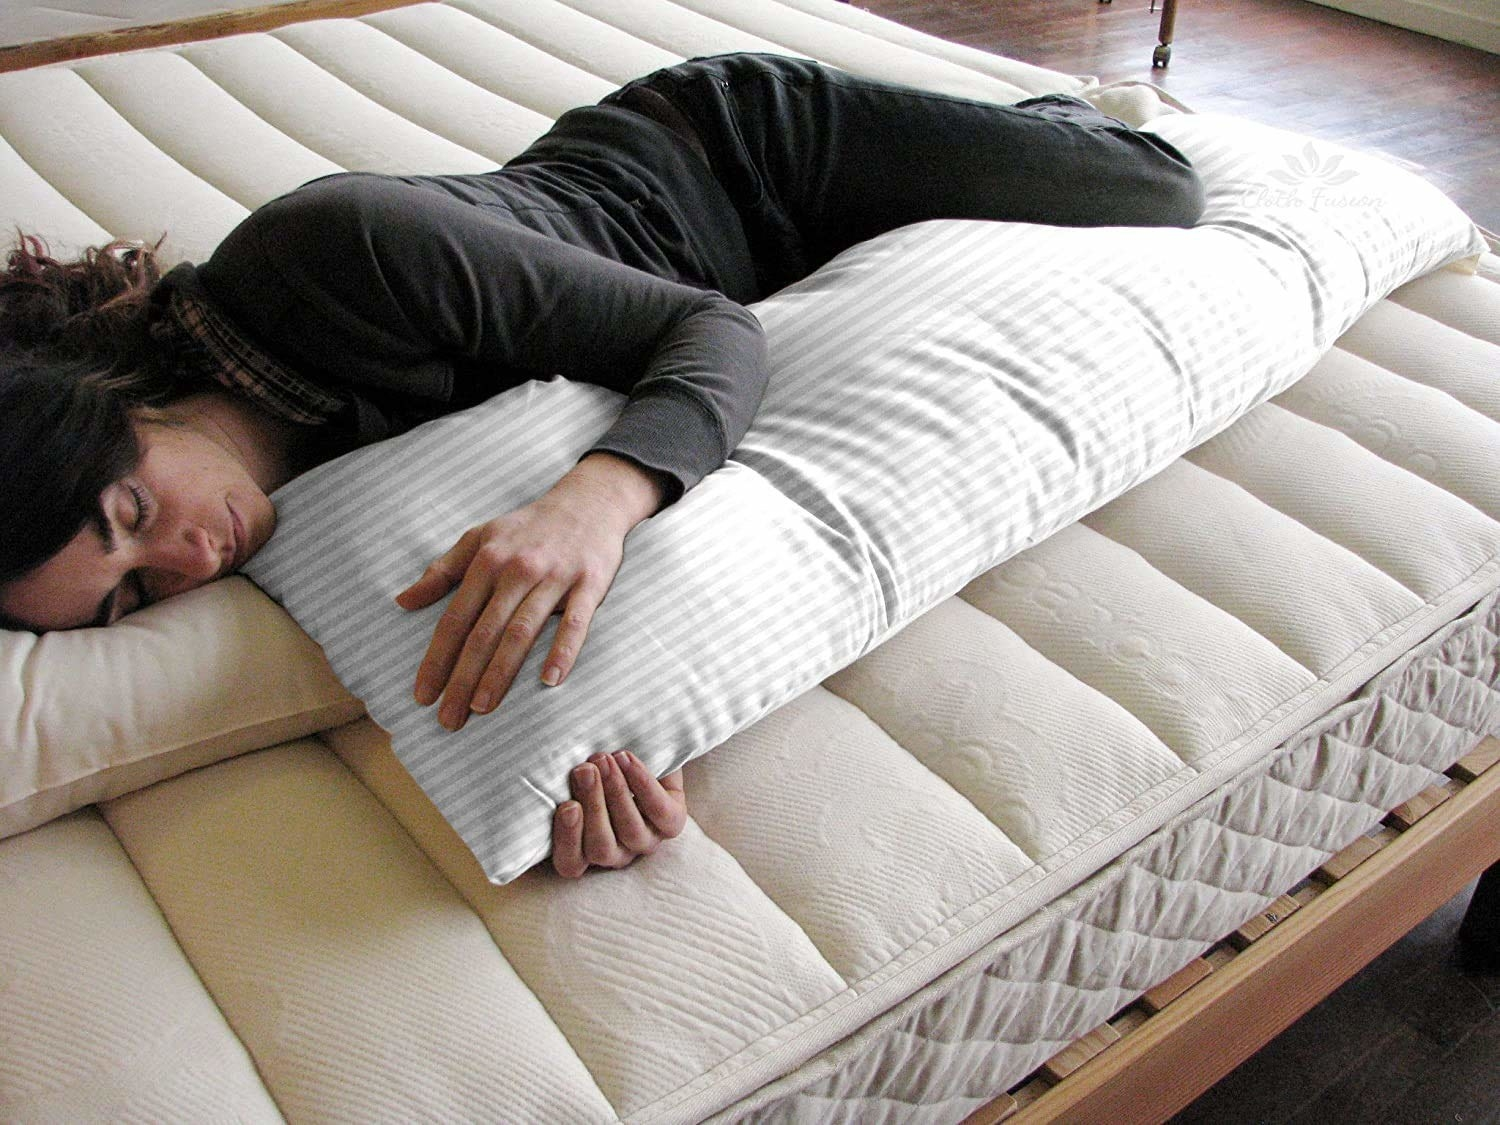 A sleeping person hugging the body pillow.